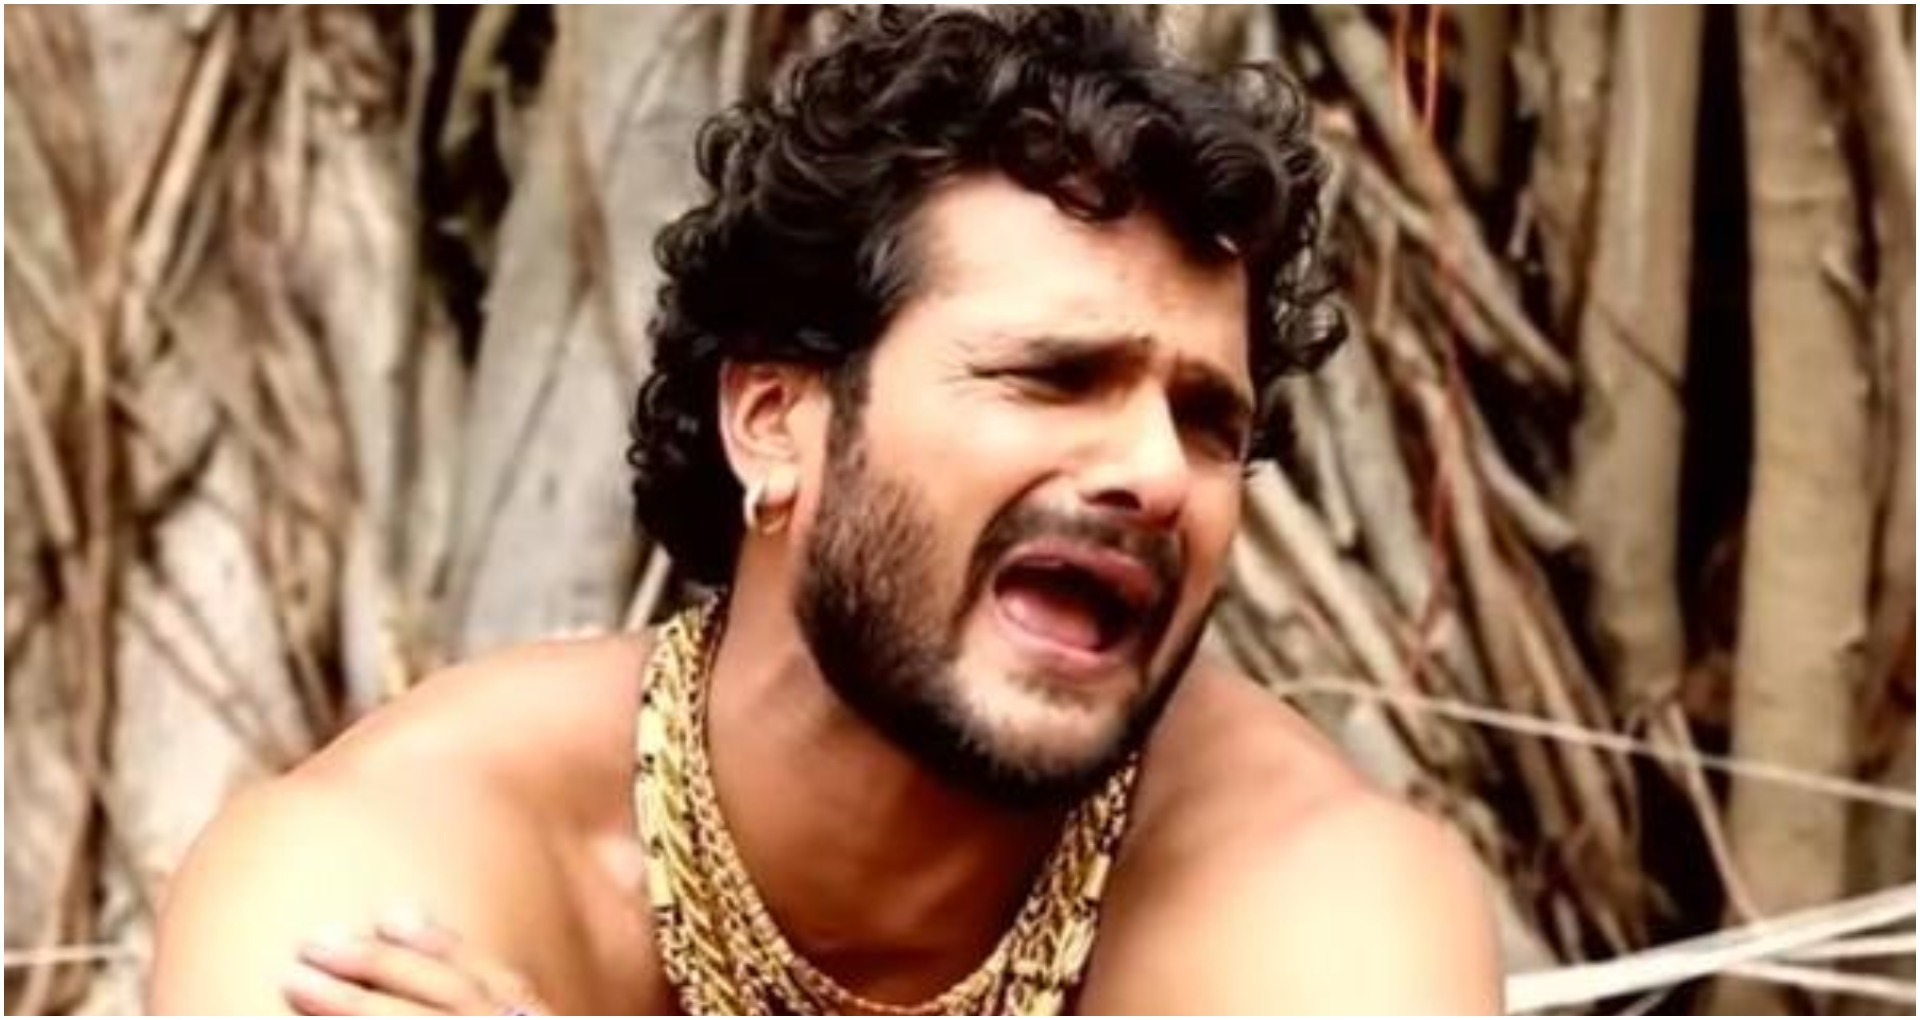 Bhojpuri superstar Khesari Lal Yadav on Thursday said that he was being forced to be Sushant Singh Rajput.